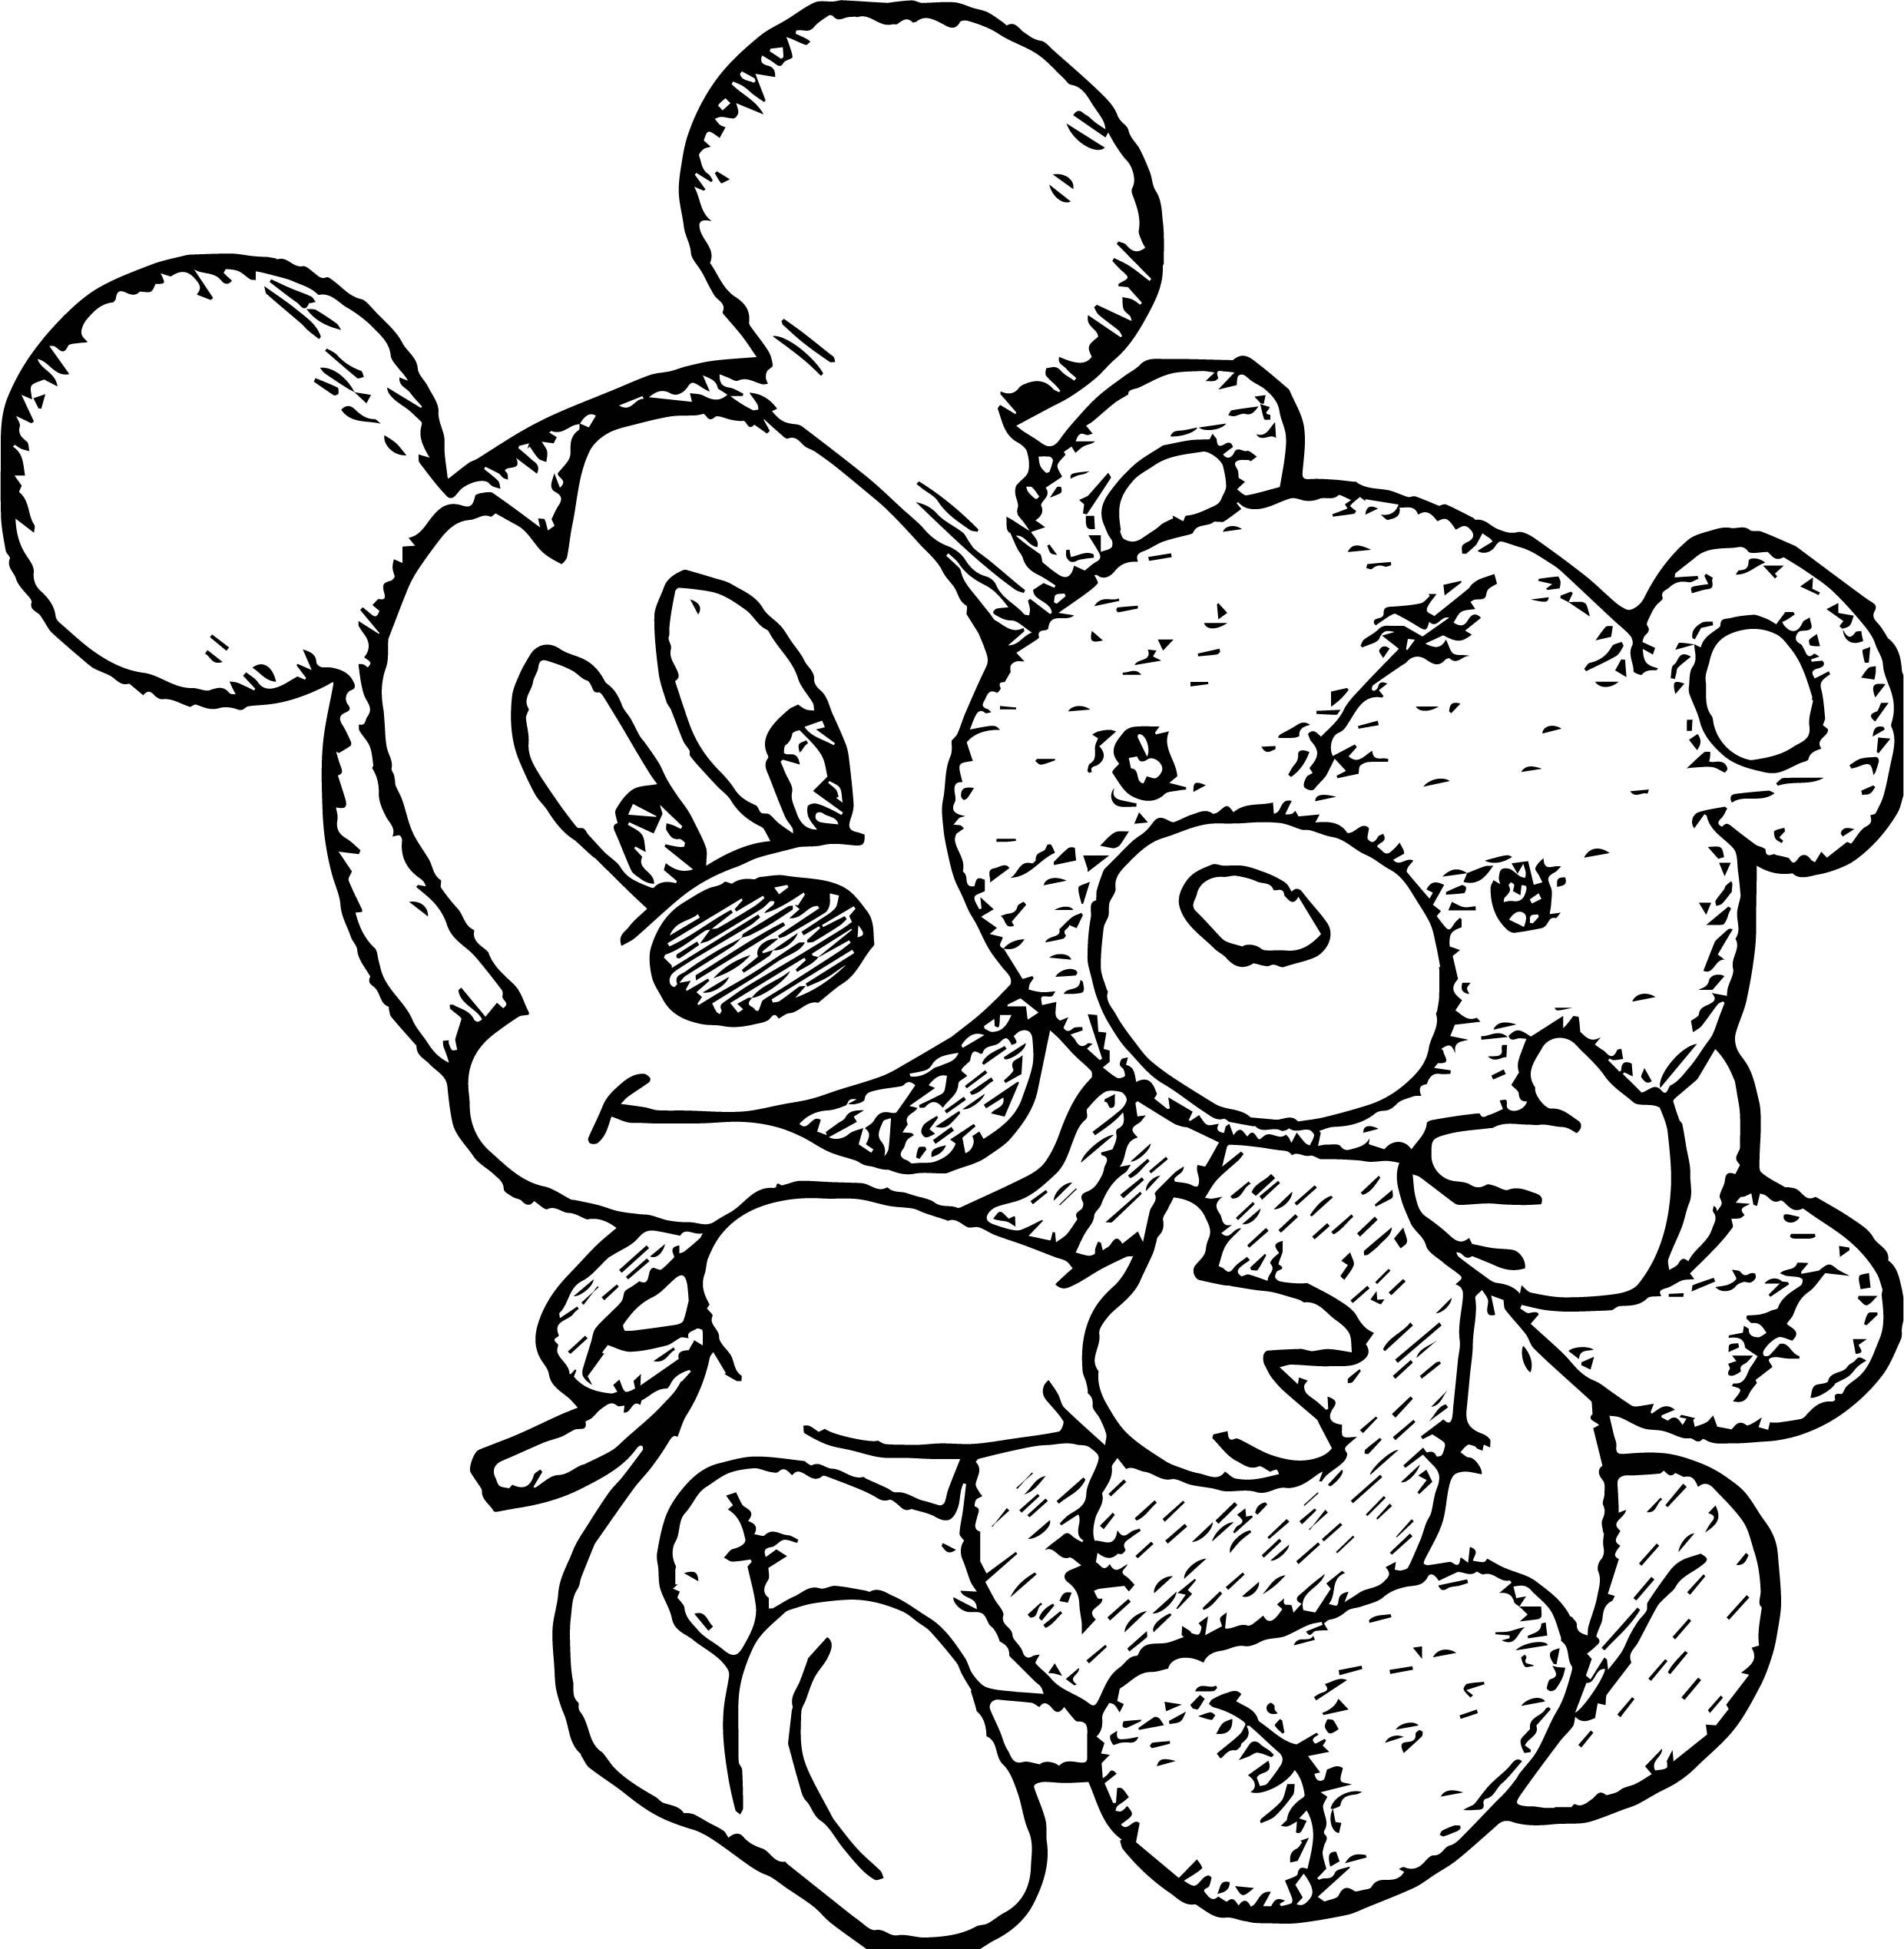 Awesome Baby Mickey Cute Bears Toy Coloring Page Baby Mickey Bear Toy Cute Bears